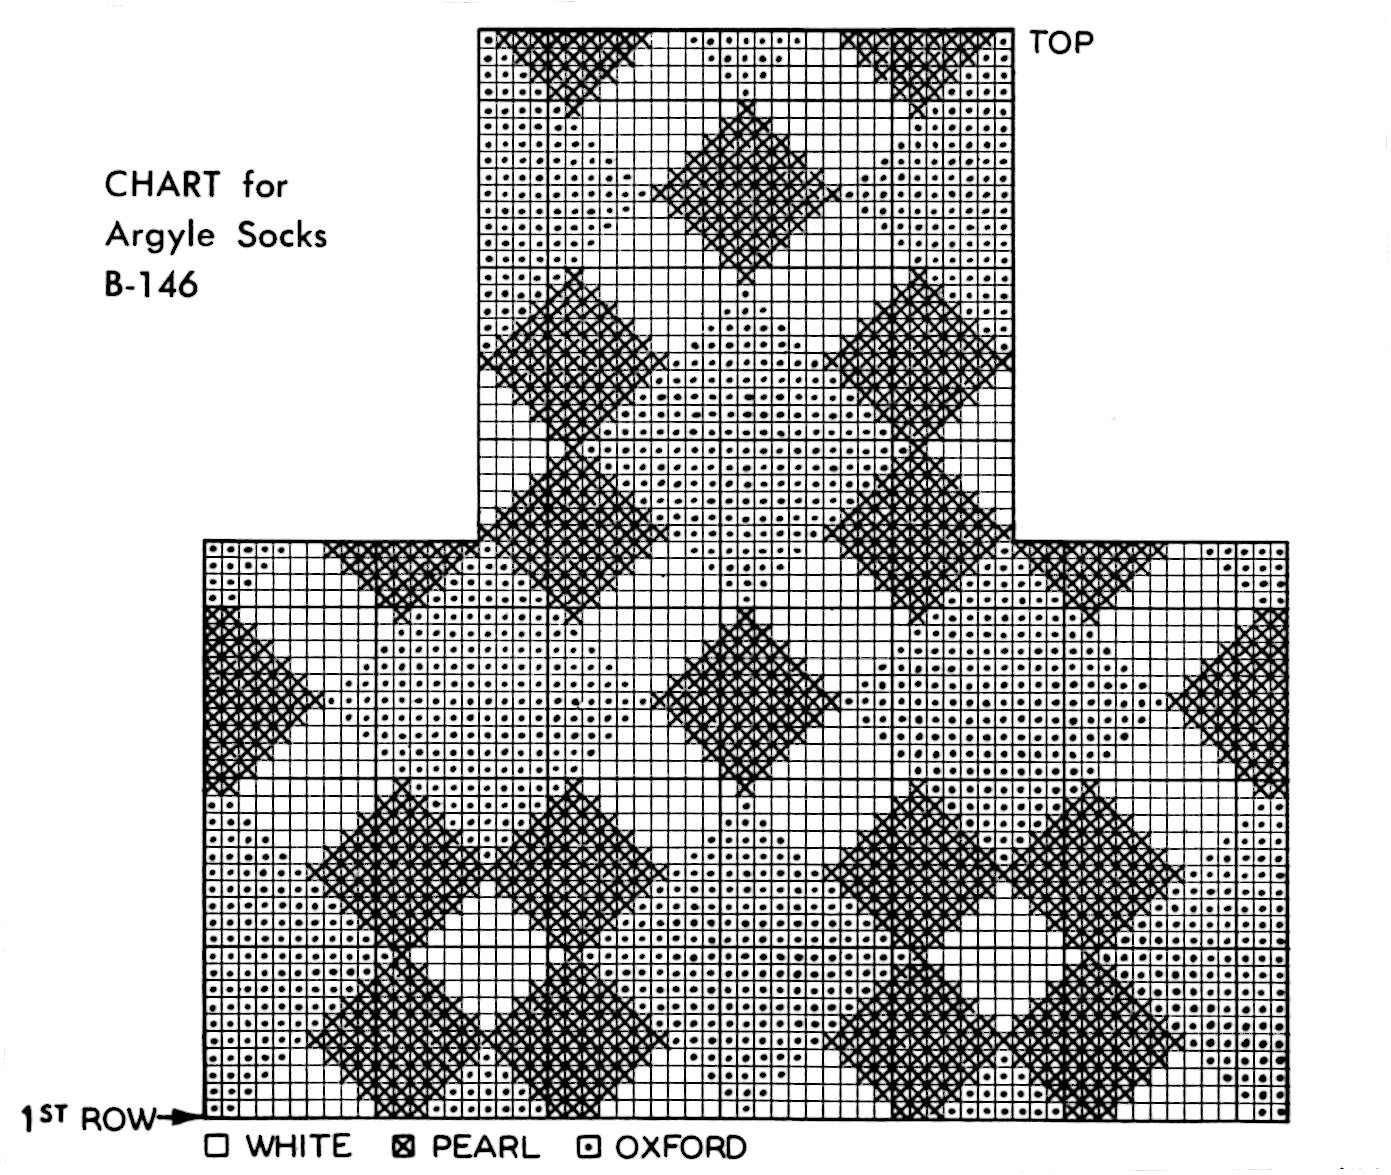 Knit Argyle Pattern : Argyle Socks for Dad - Vintage 2 Needles Knitting Pattern - Vintage Crafts an...